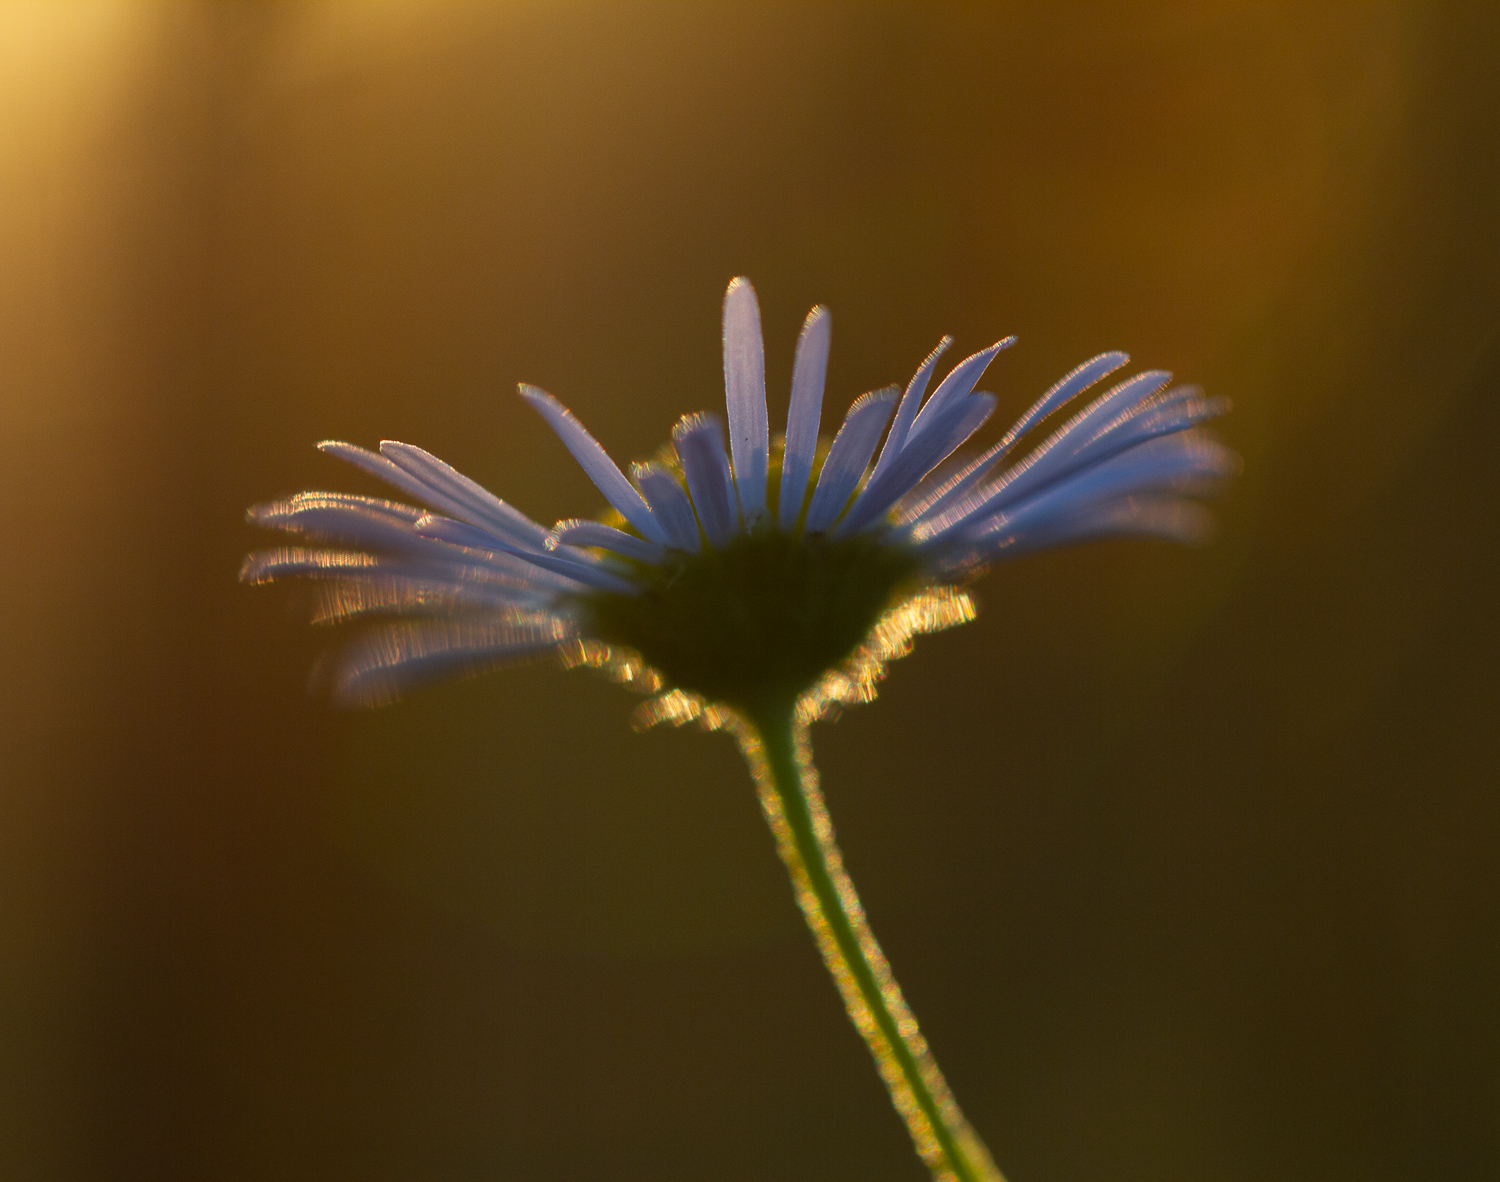 backlit flower - How to Use Backlight to Create Incredible Images